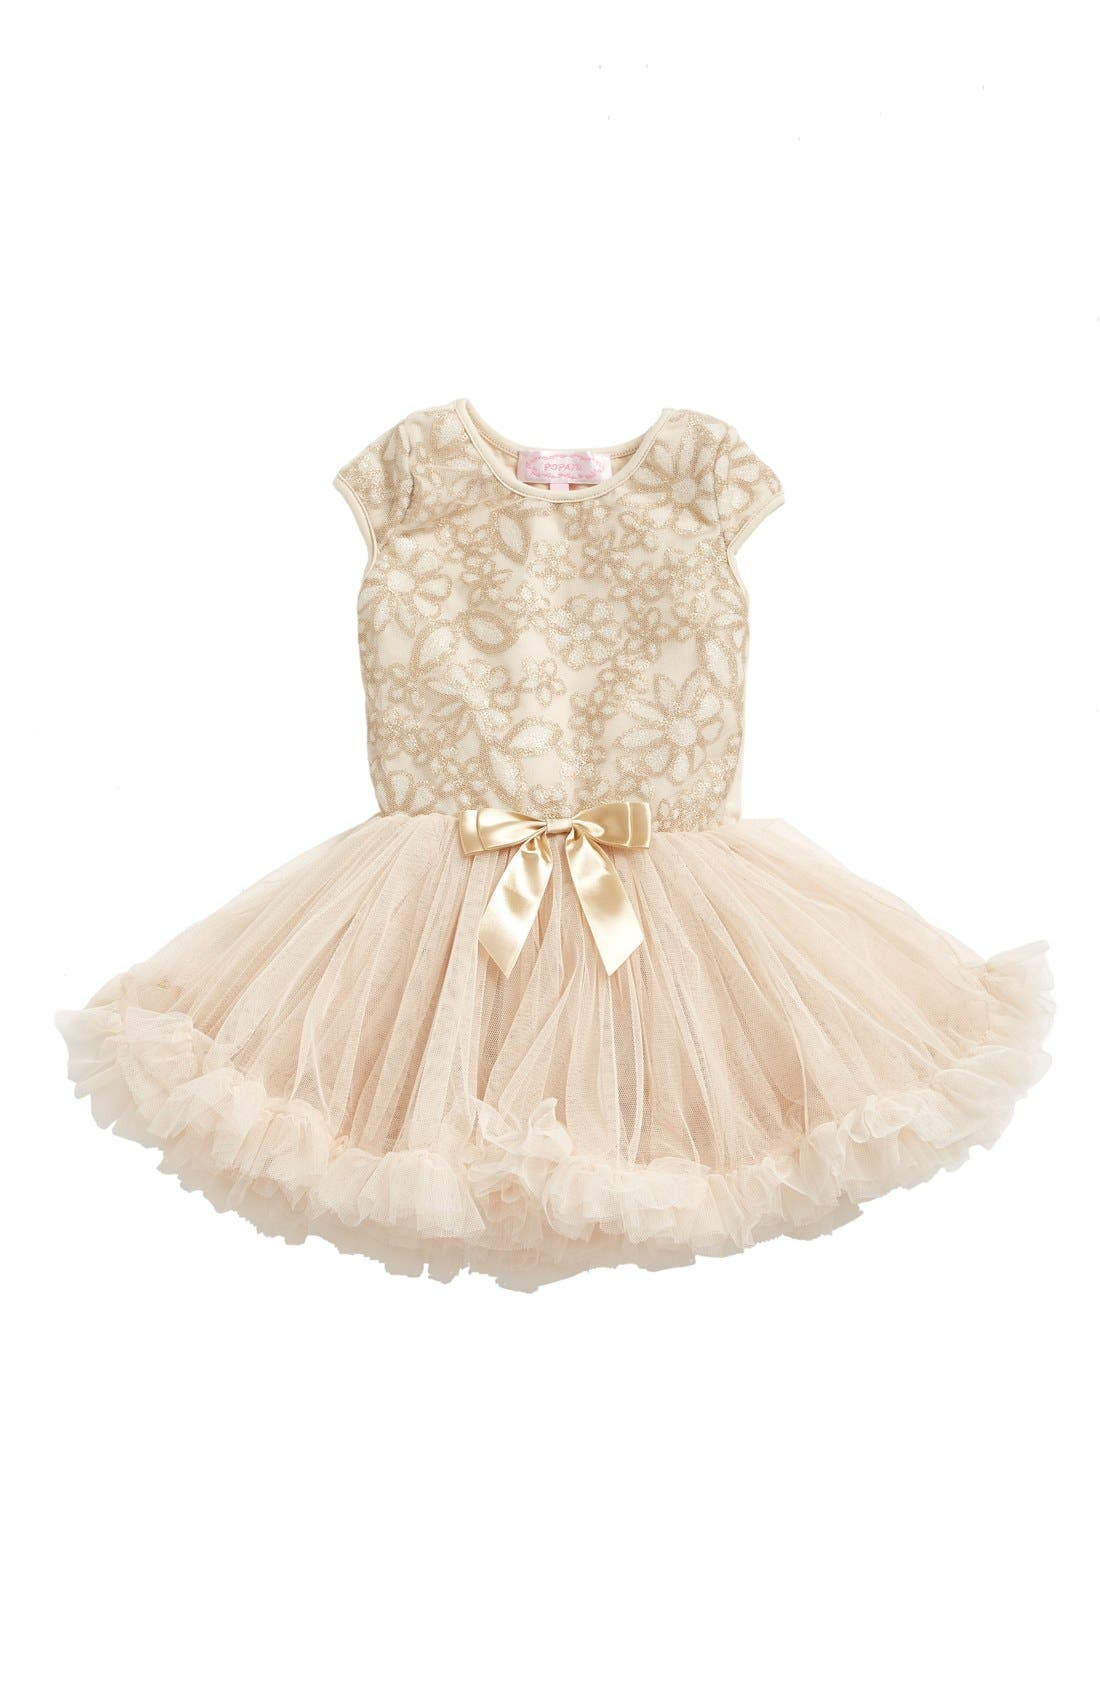 Main Image - Popatu Lace Pettidress (Baby Girls)